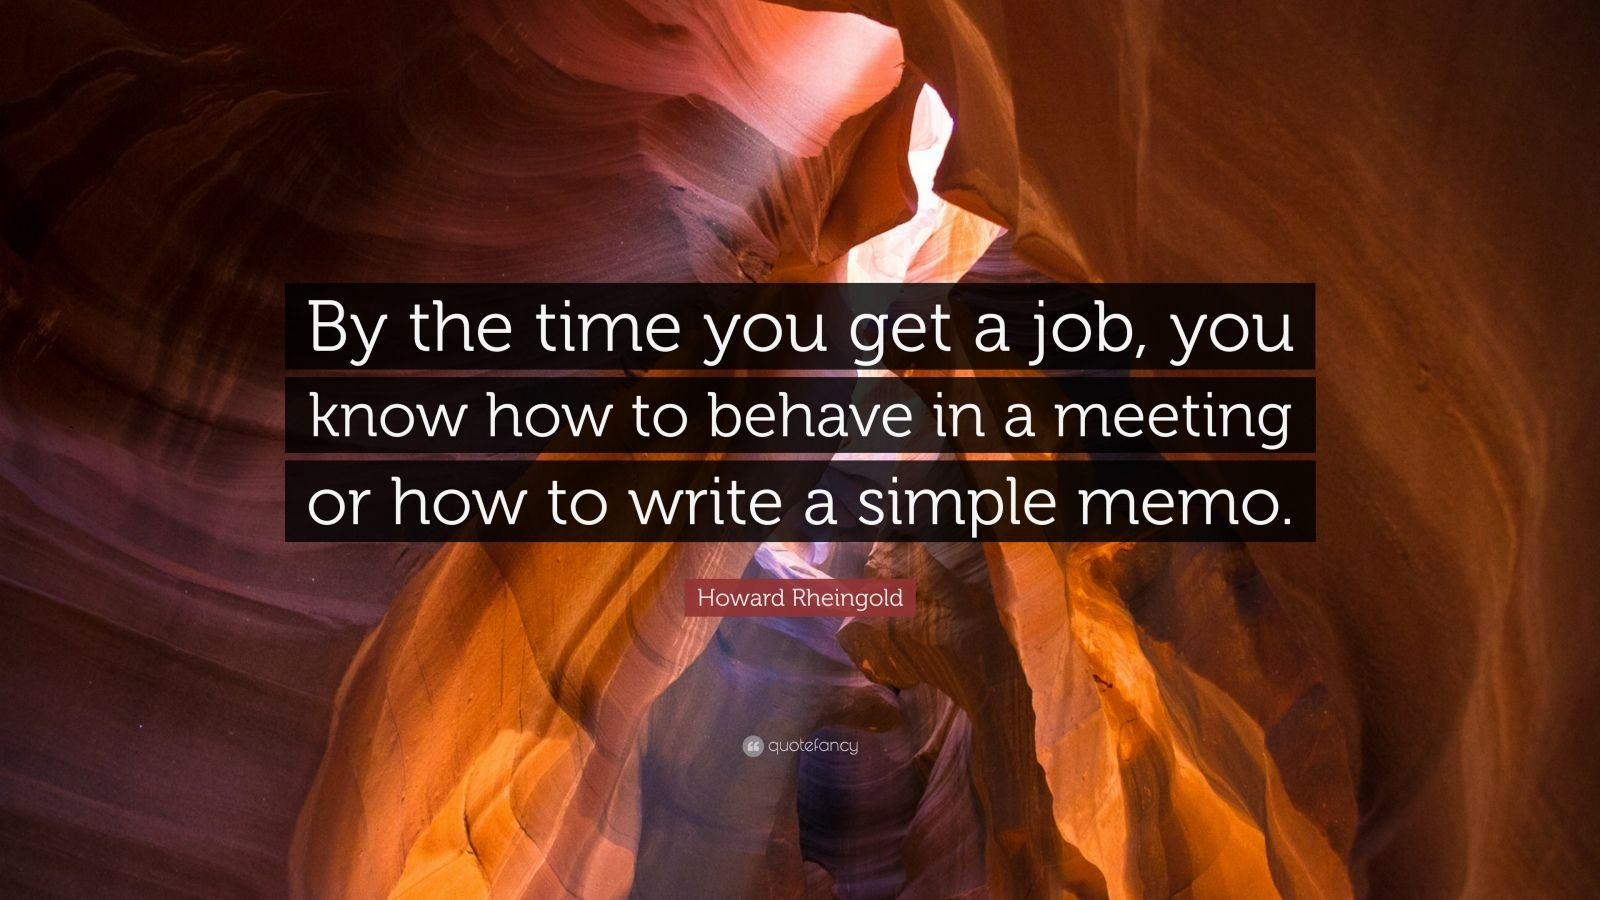 """Howard Rheingold Quote: """"By the time you get a job, you know how to behave in a meeting or how to write a simple memo."""""""